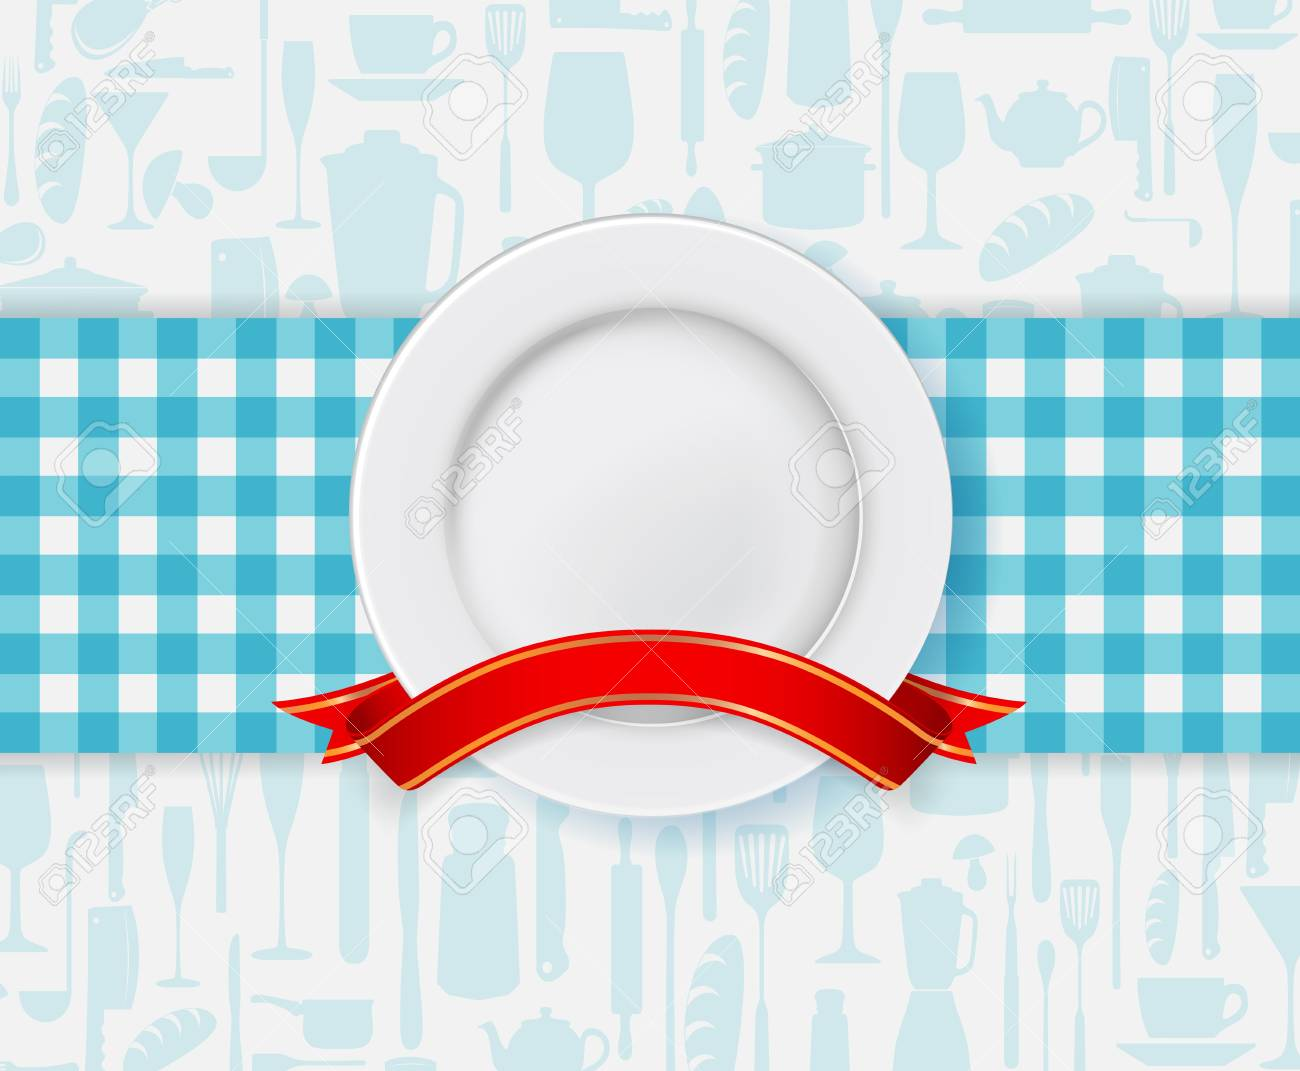 Illustration of Restaurant menu design with plate and ribbon Stock Vector - 24635441